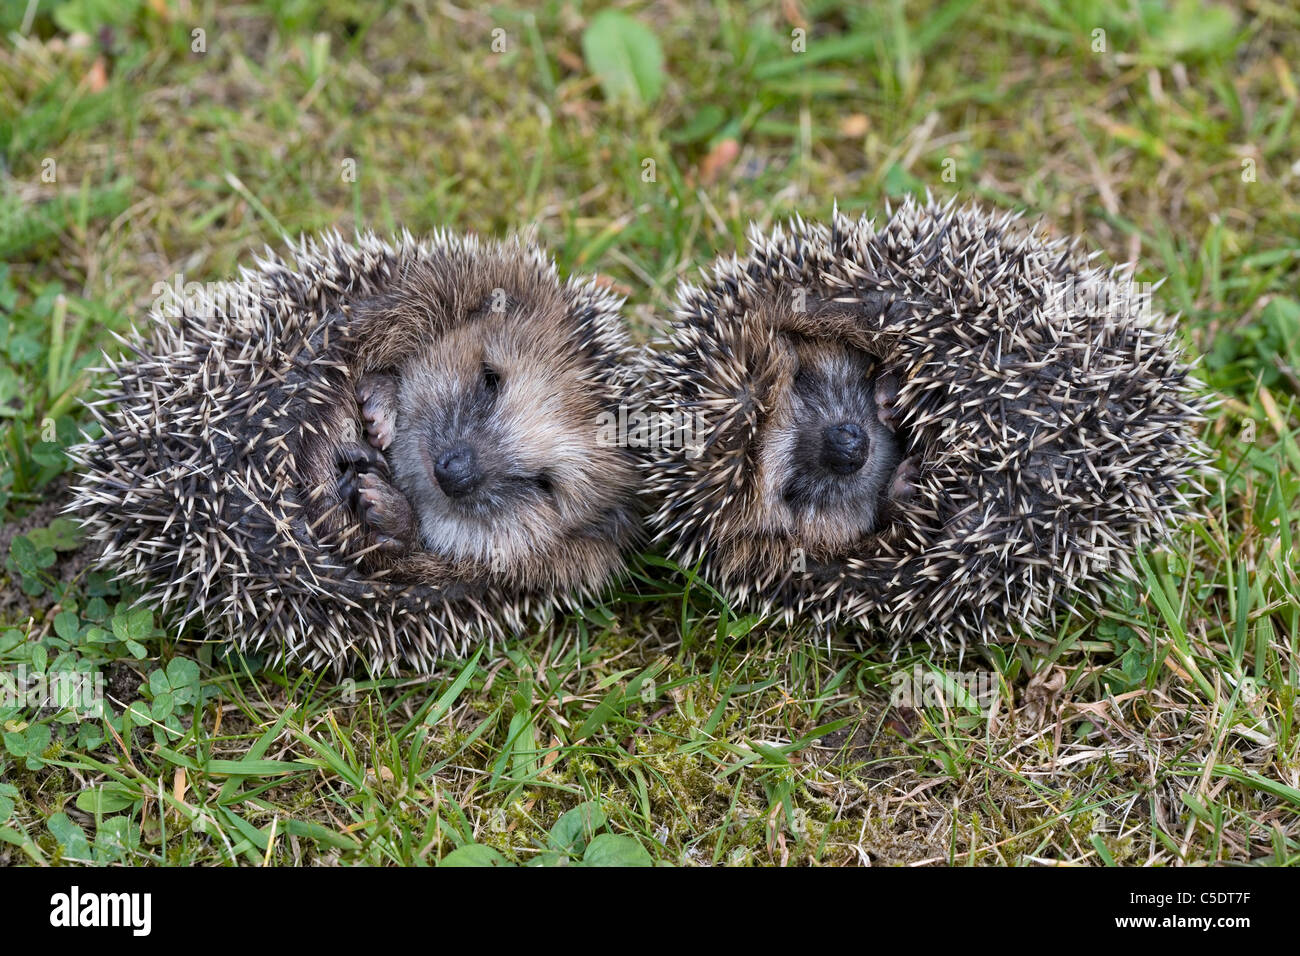 Close-up of two hedgehogs on the grass - Stock Image